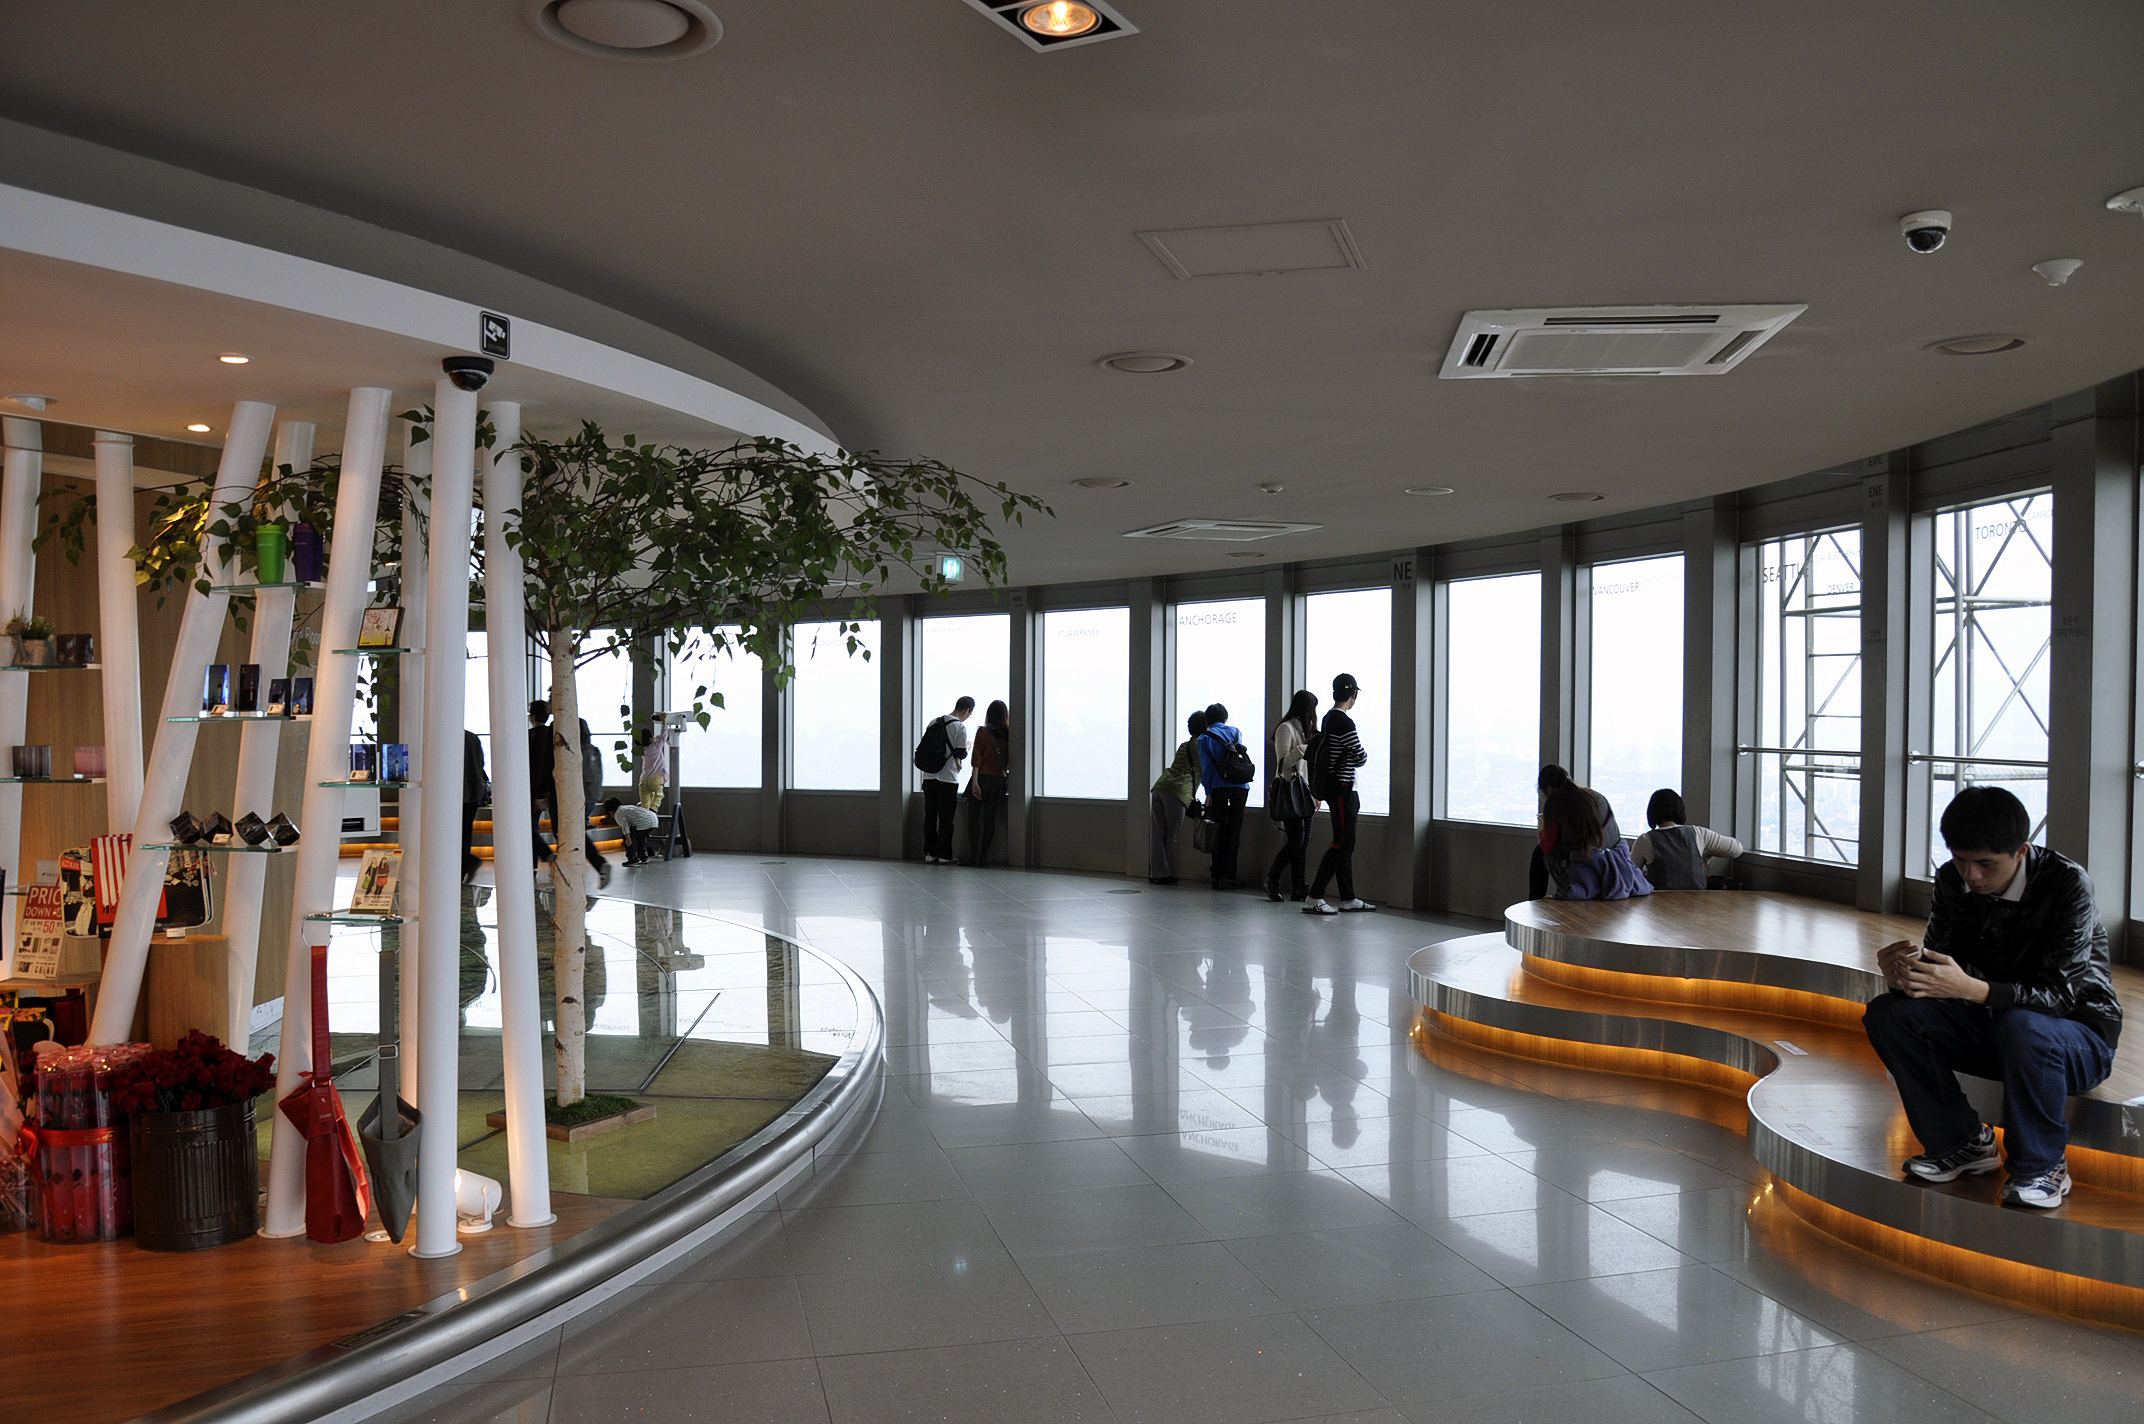 Namsan Seoul Tower  Attractions  Visit Seoul  The